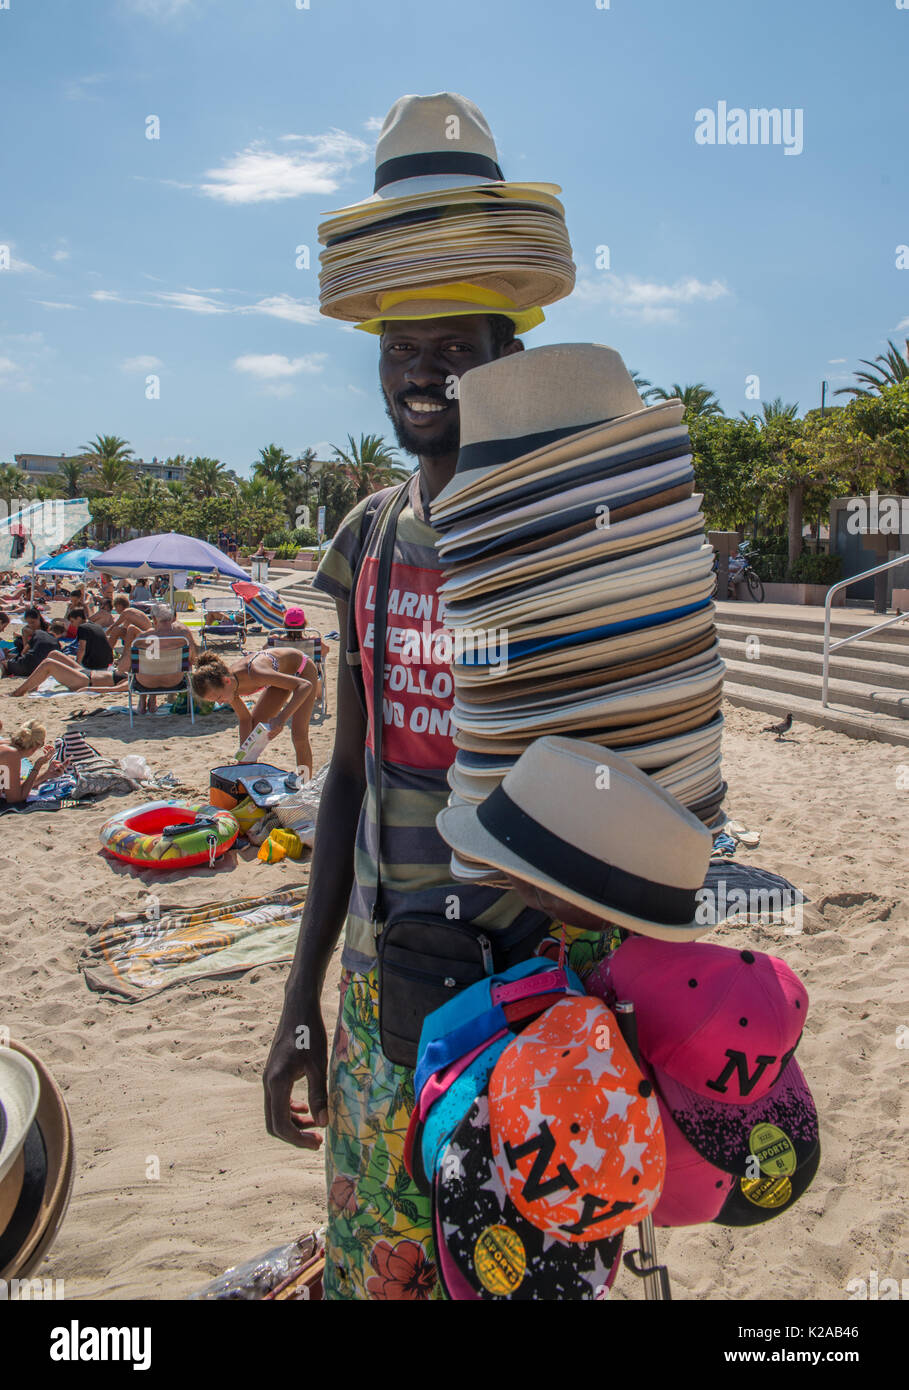 An African man sells straw hats on the beach in Antibes, France Stock Photo